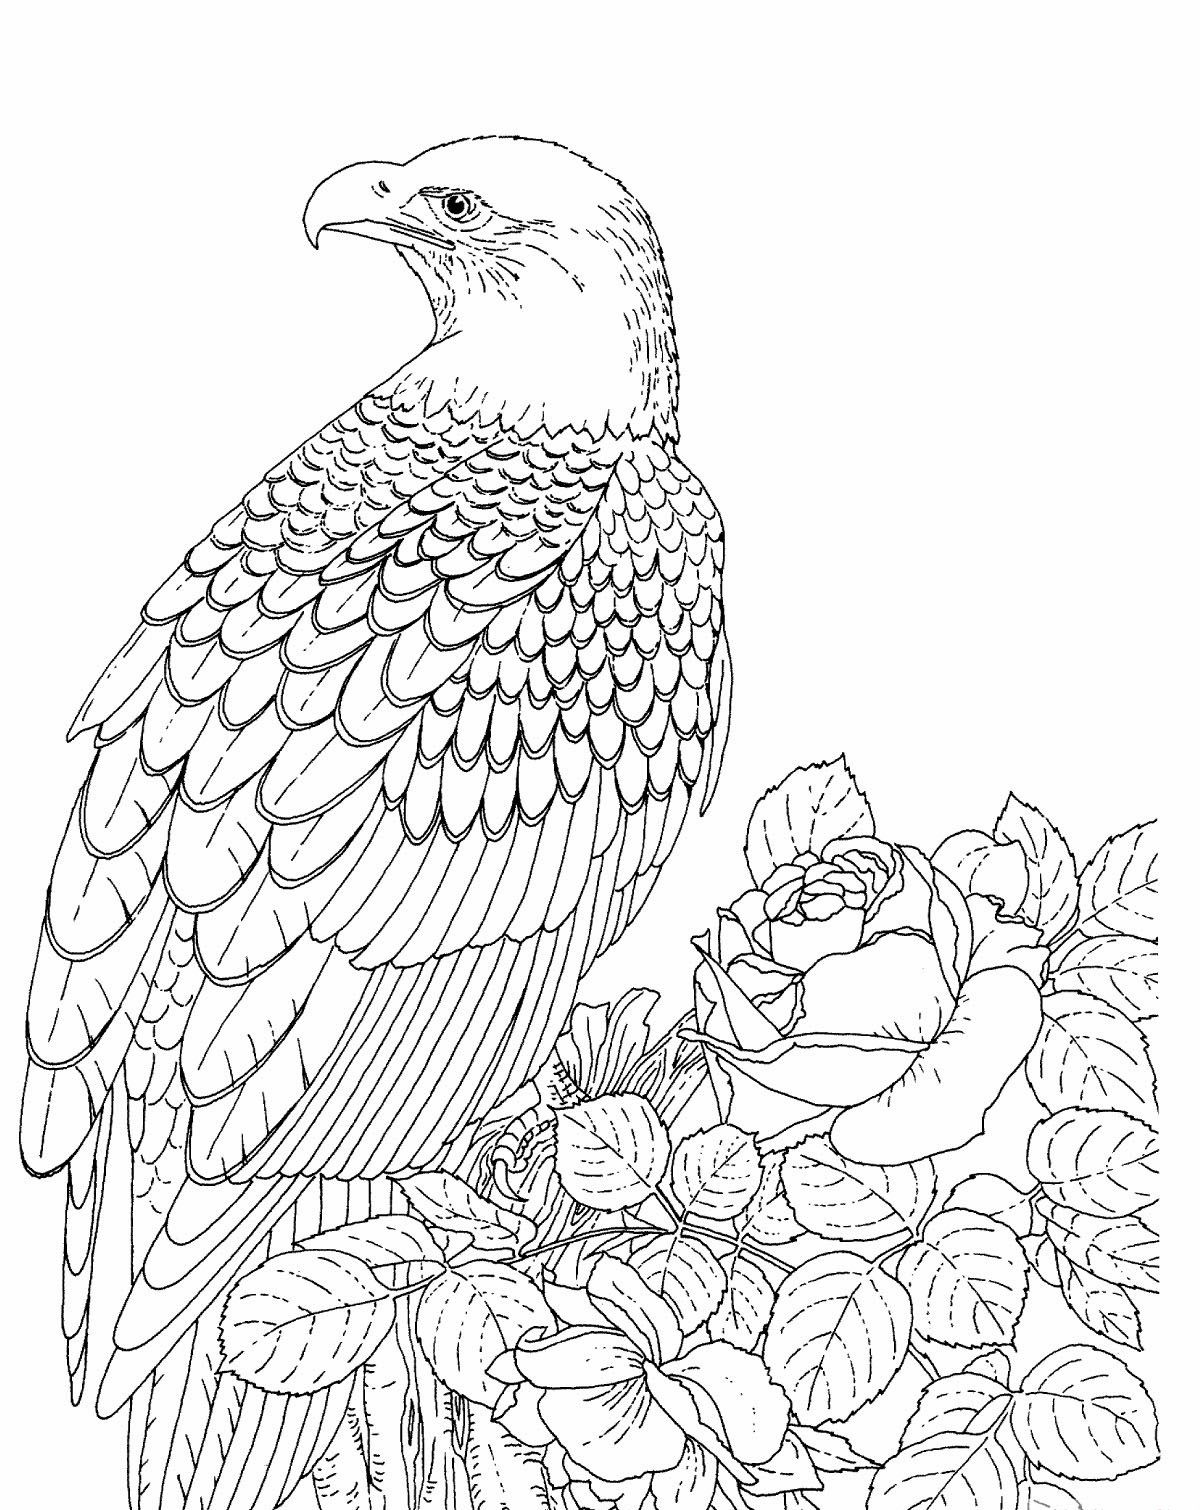 Bald Eagle Outline Drawing At Getdrawings